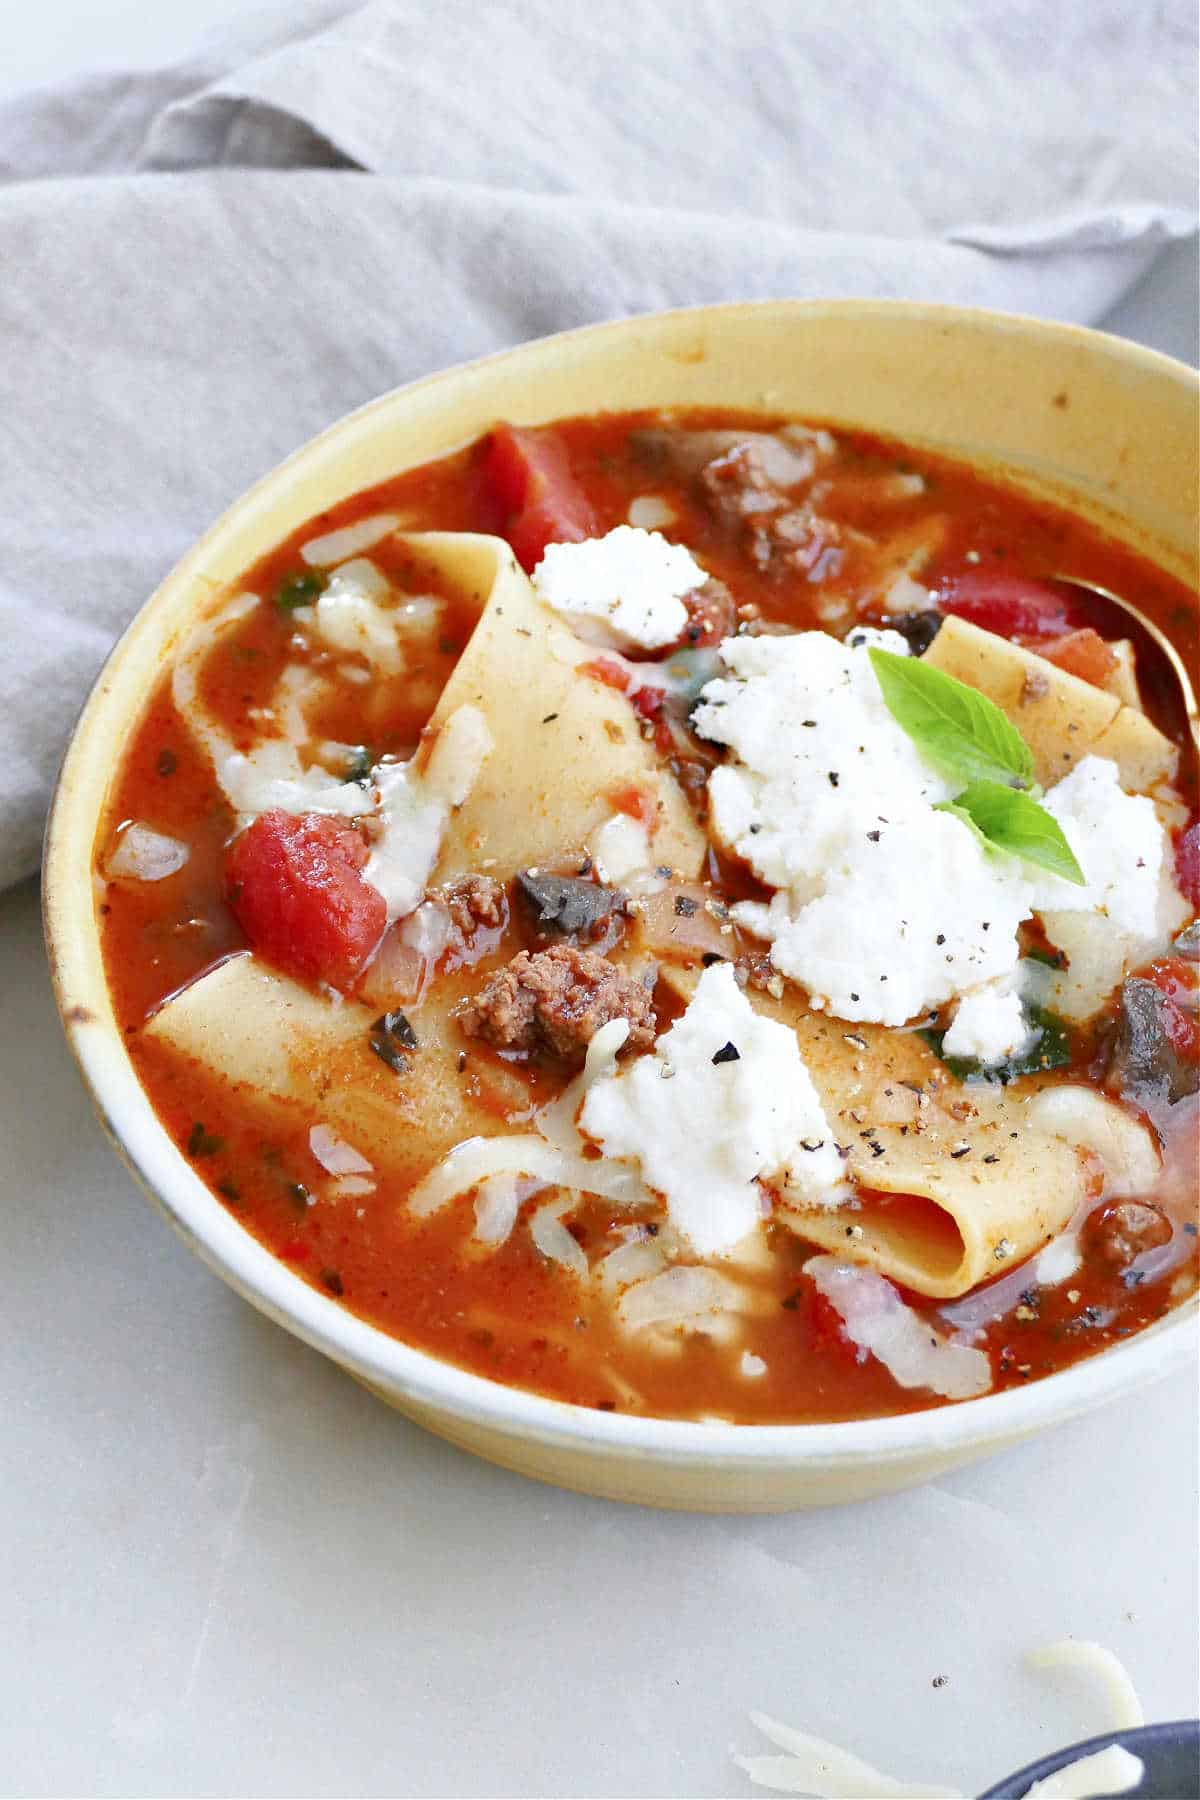 veggie and beef lasagna soup in a serving bowl on a counter next to a napkin